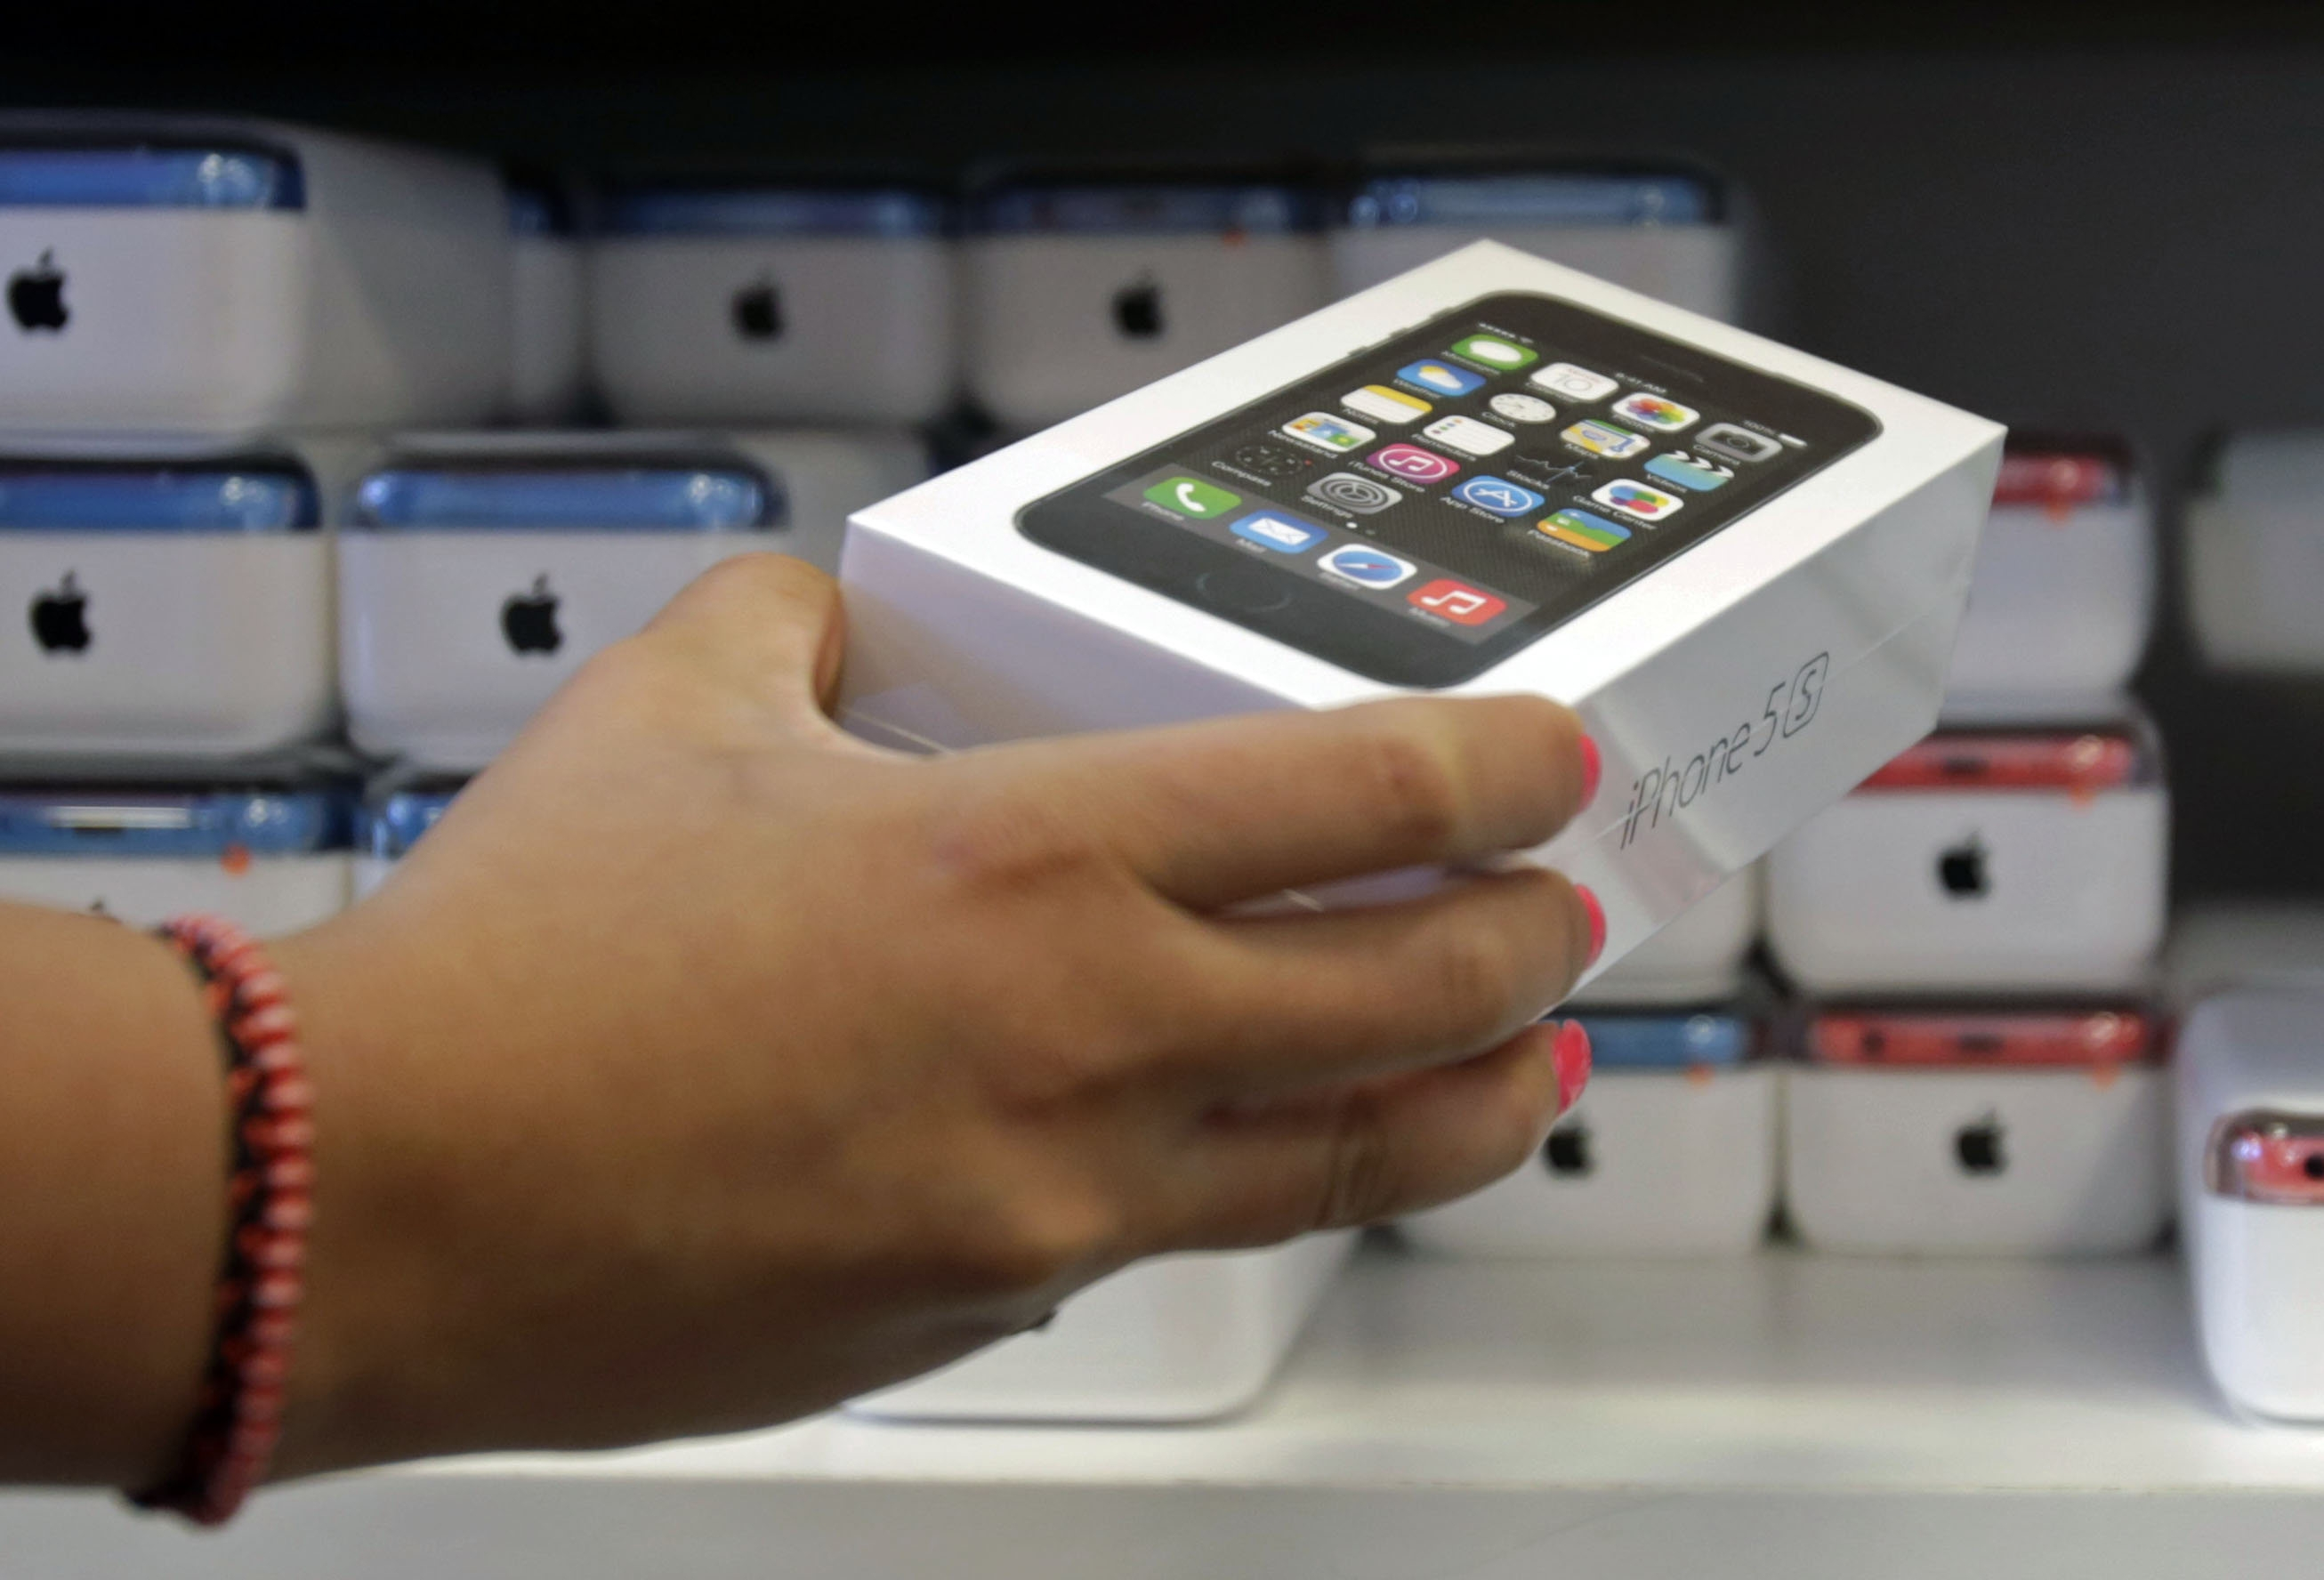 FILE – In this Friday, Sept. 20, 2013, file photo, a sales person pulls out an iPhone 5s for a customer during the opening day of sales of the iPhone 5s and iPhone 5C, in Hialeah, Fla. Apple says Monday, Sept. 23, 2013, that shoppers snapped up 9 million of its newest iPhones since the devices were launched Friday, and that demand is exceeding supply.  (AP Photo/Alan Diaz)